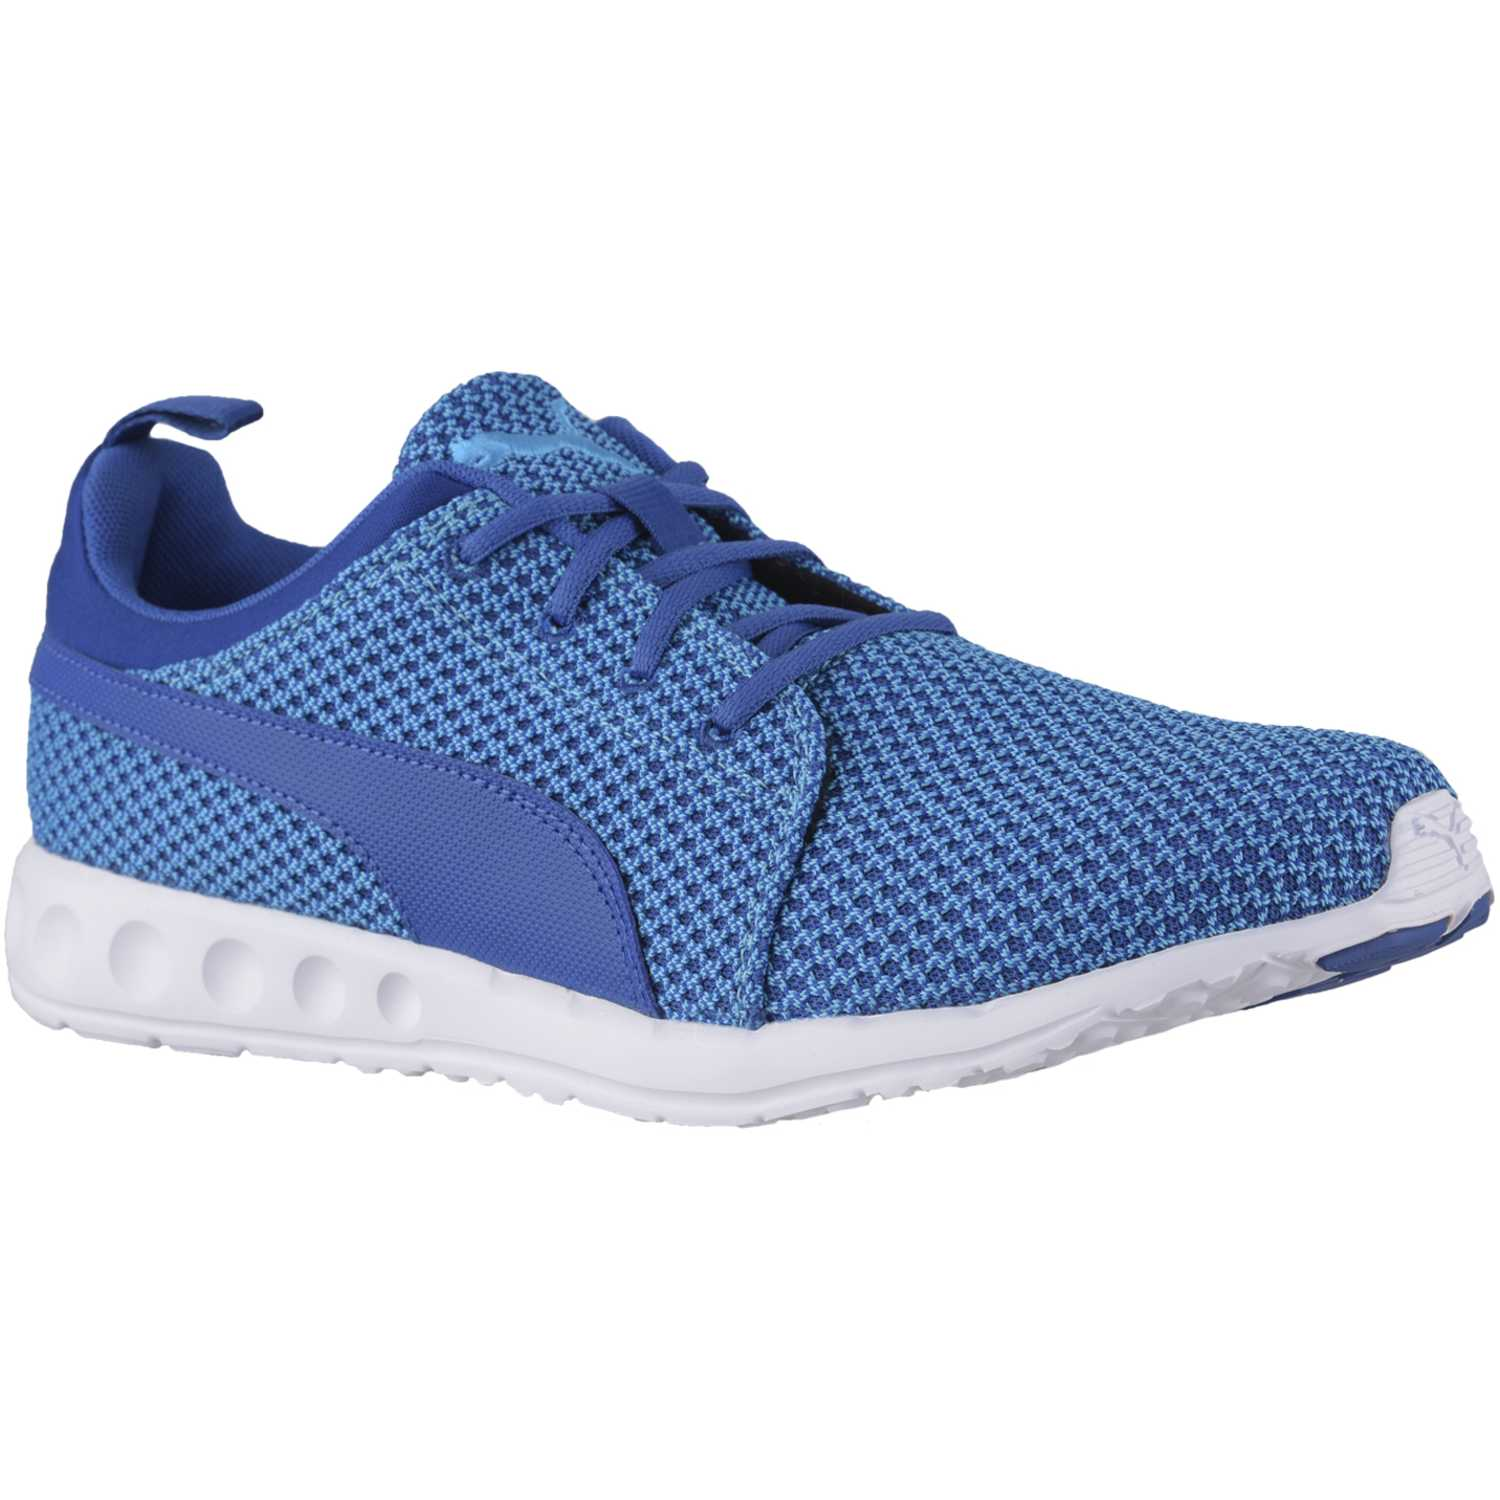 Puma CARSON KNITTED Celeste / azul Walking